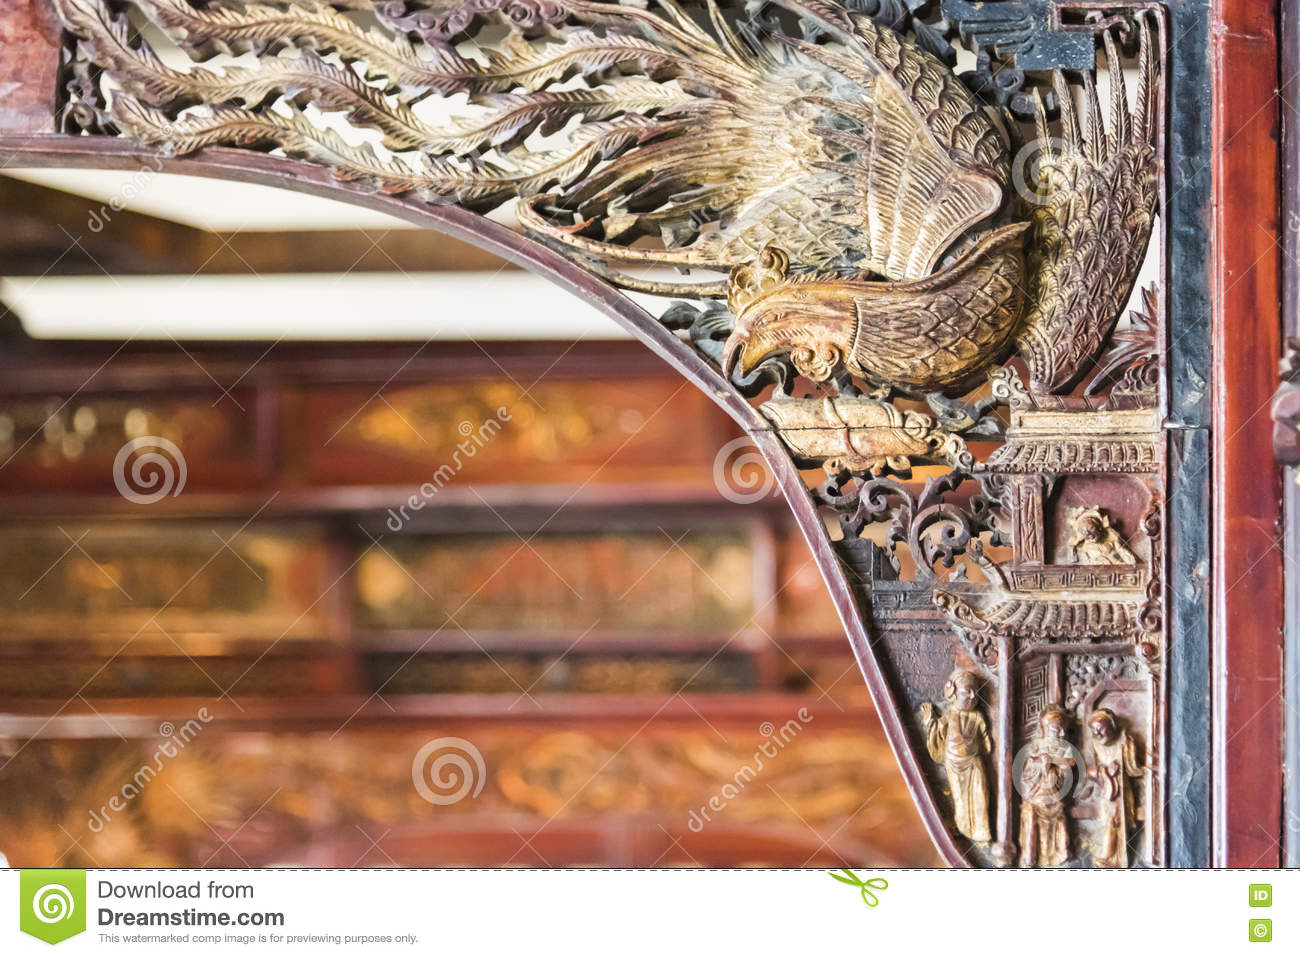 Wood carvings on the wooden bed stock photo image of culture